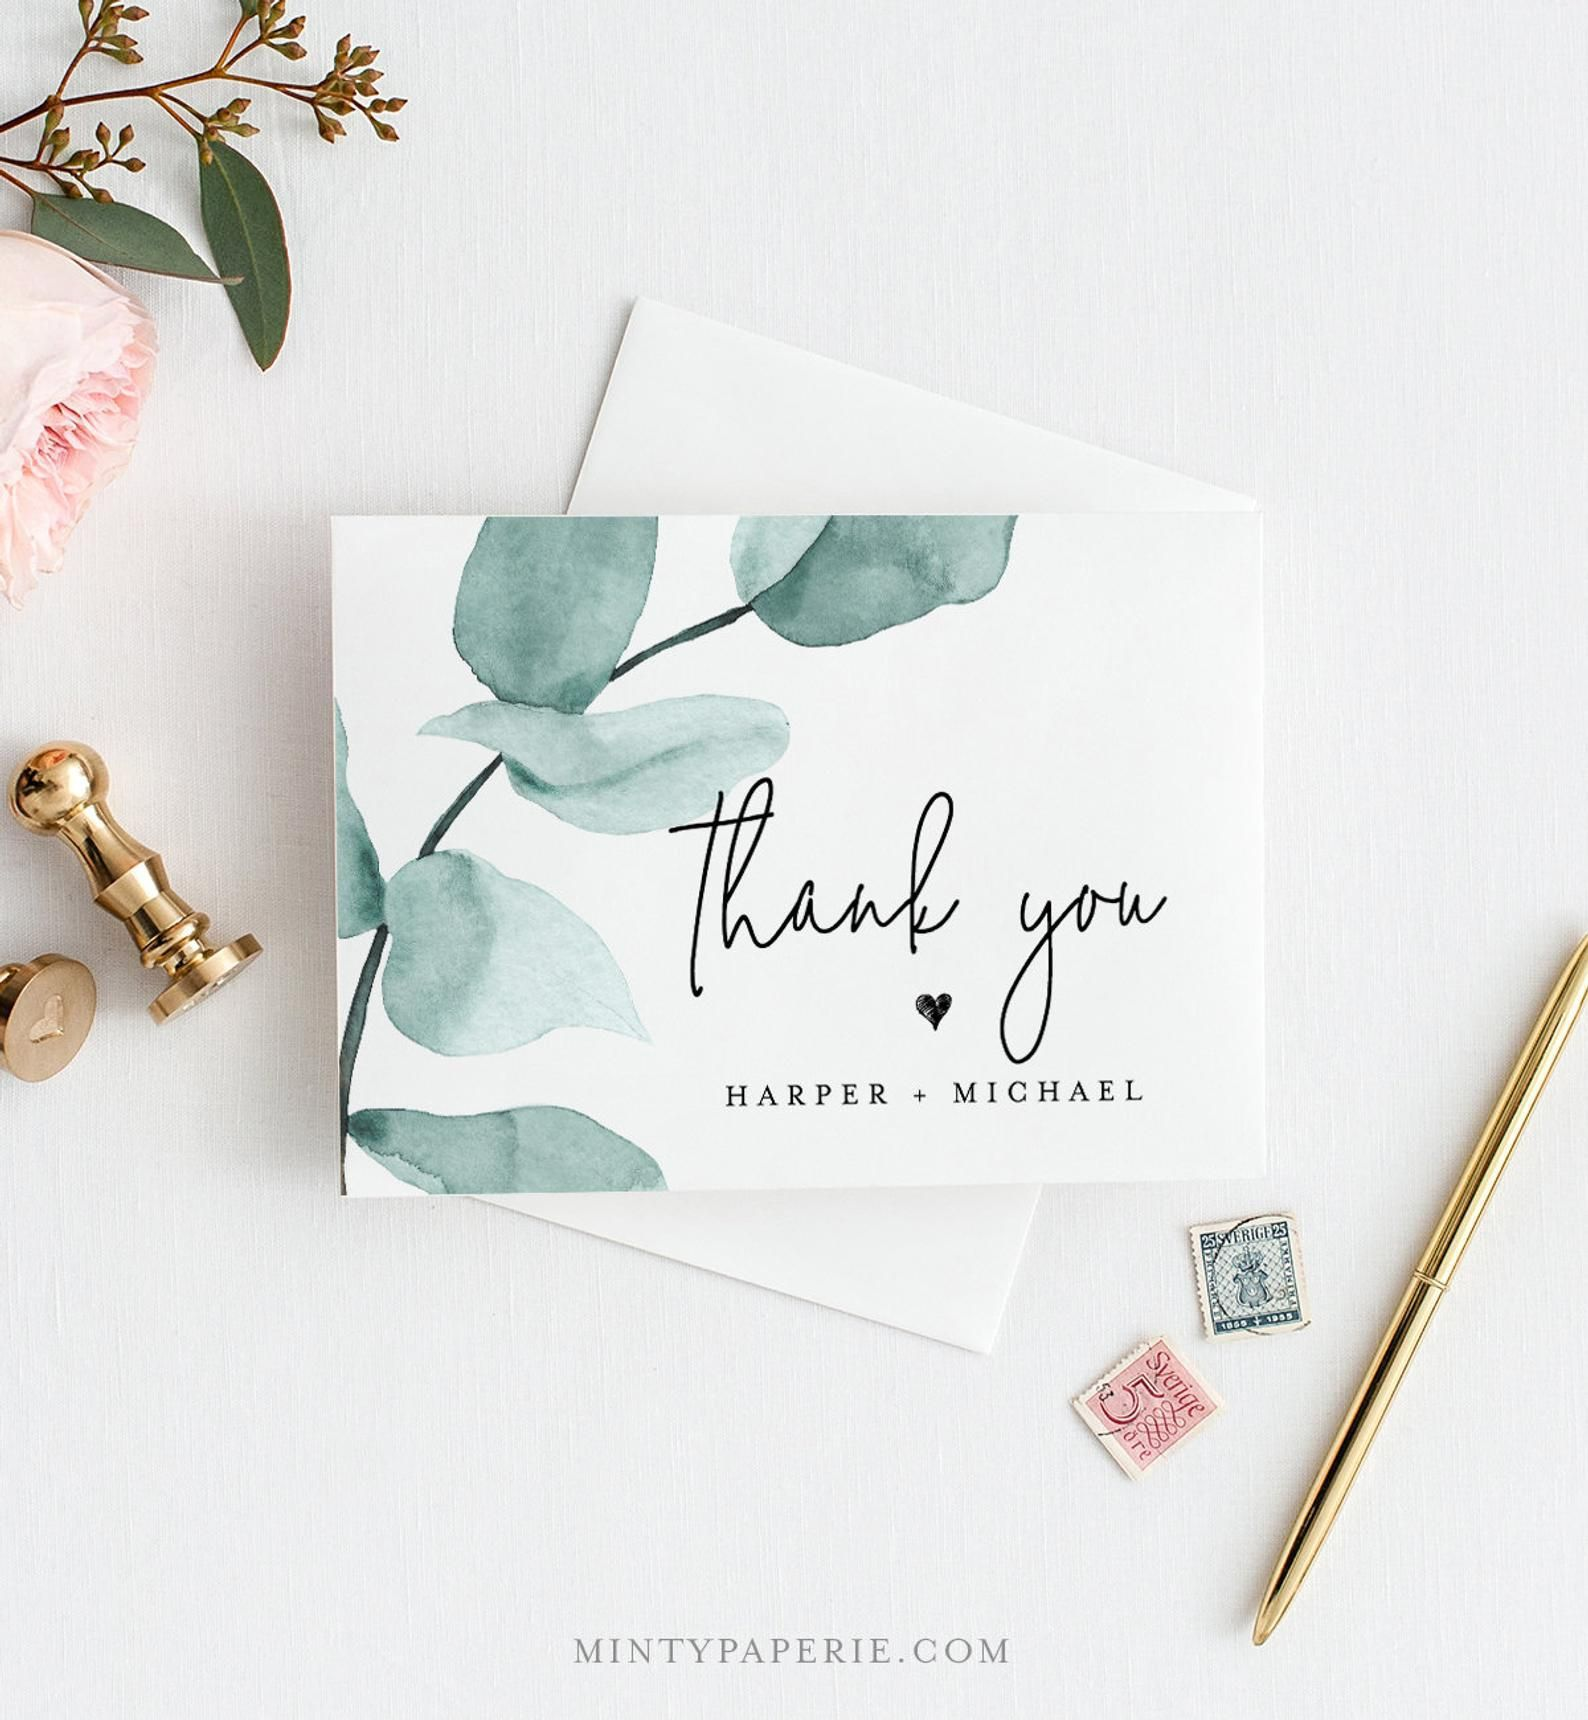 004 Impressive Diy Wedding Thank You Card Template Picture  TemplatesFull